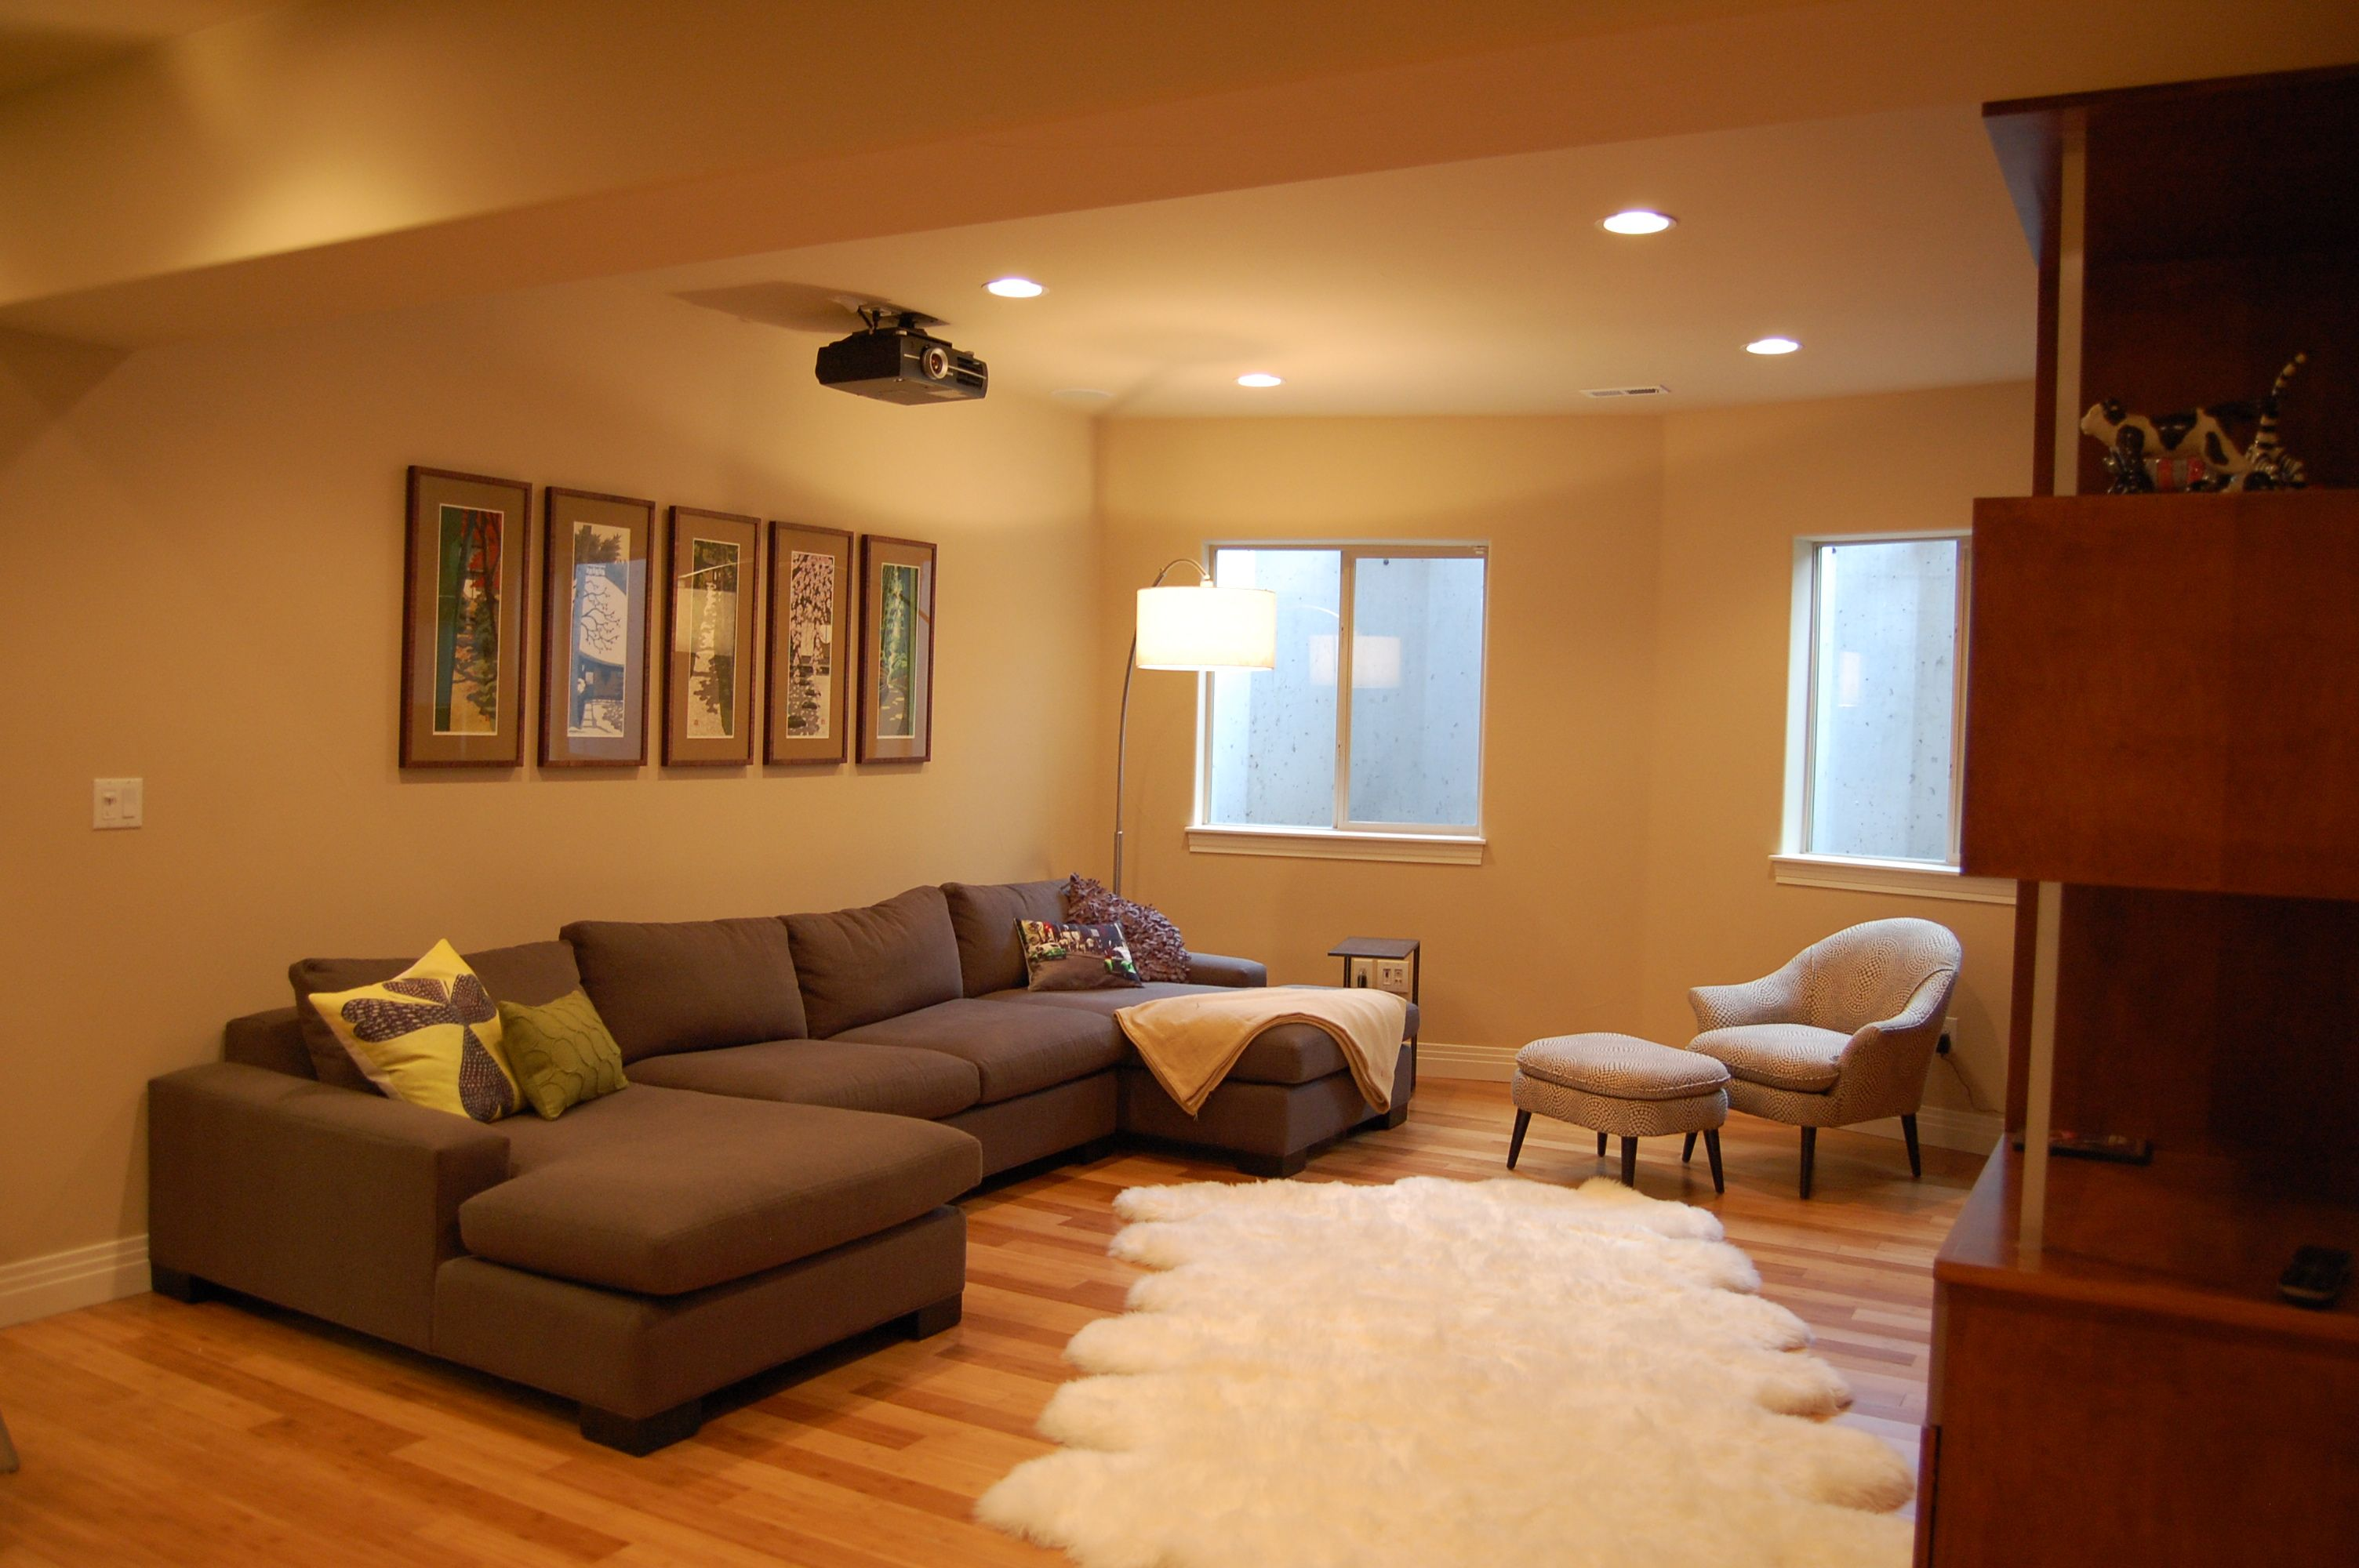 Basement Living Room Designs Amazing 23 Most Popular Small Basement Ideas Decor And Remodel  Man Decorating Inspiration